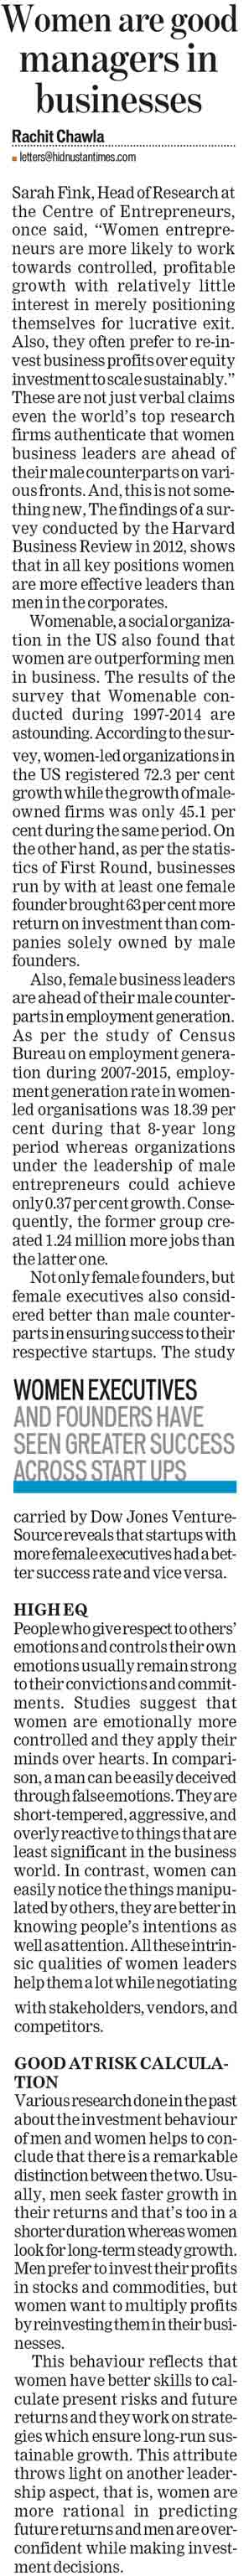 Women are good managers in businesses